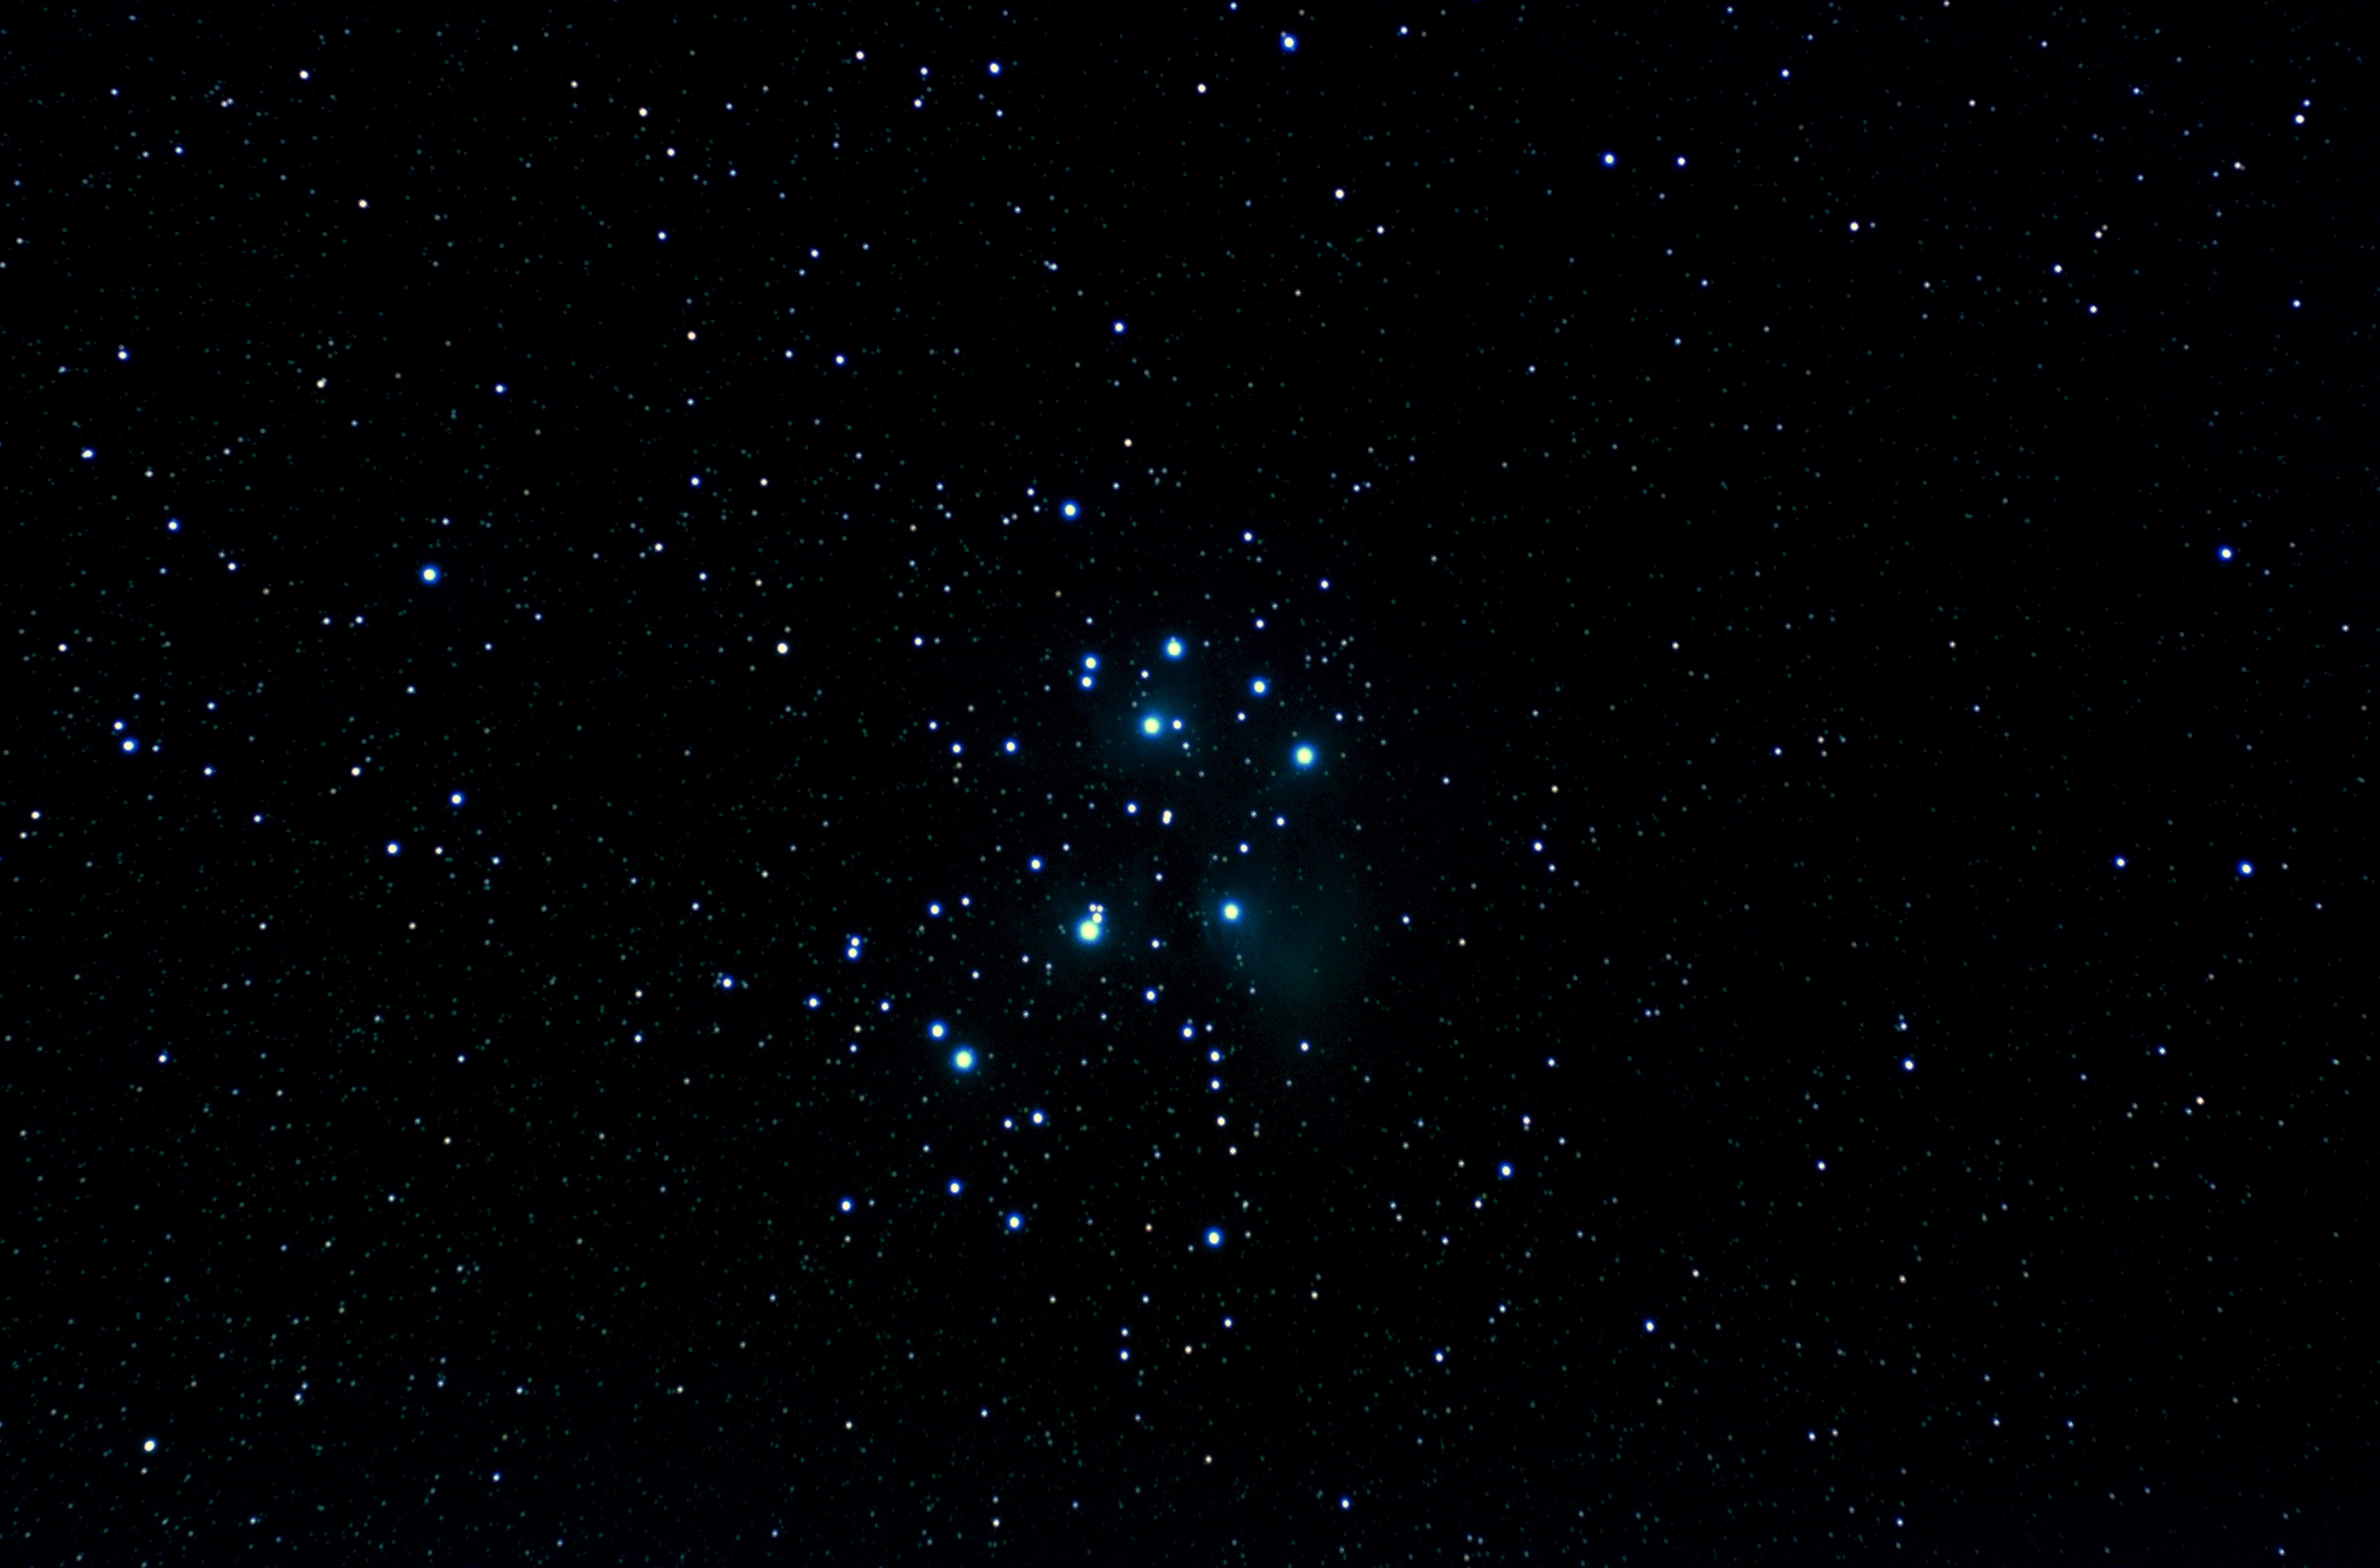 alpha star cluster - photo #17